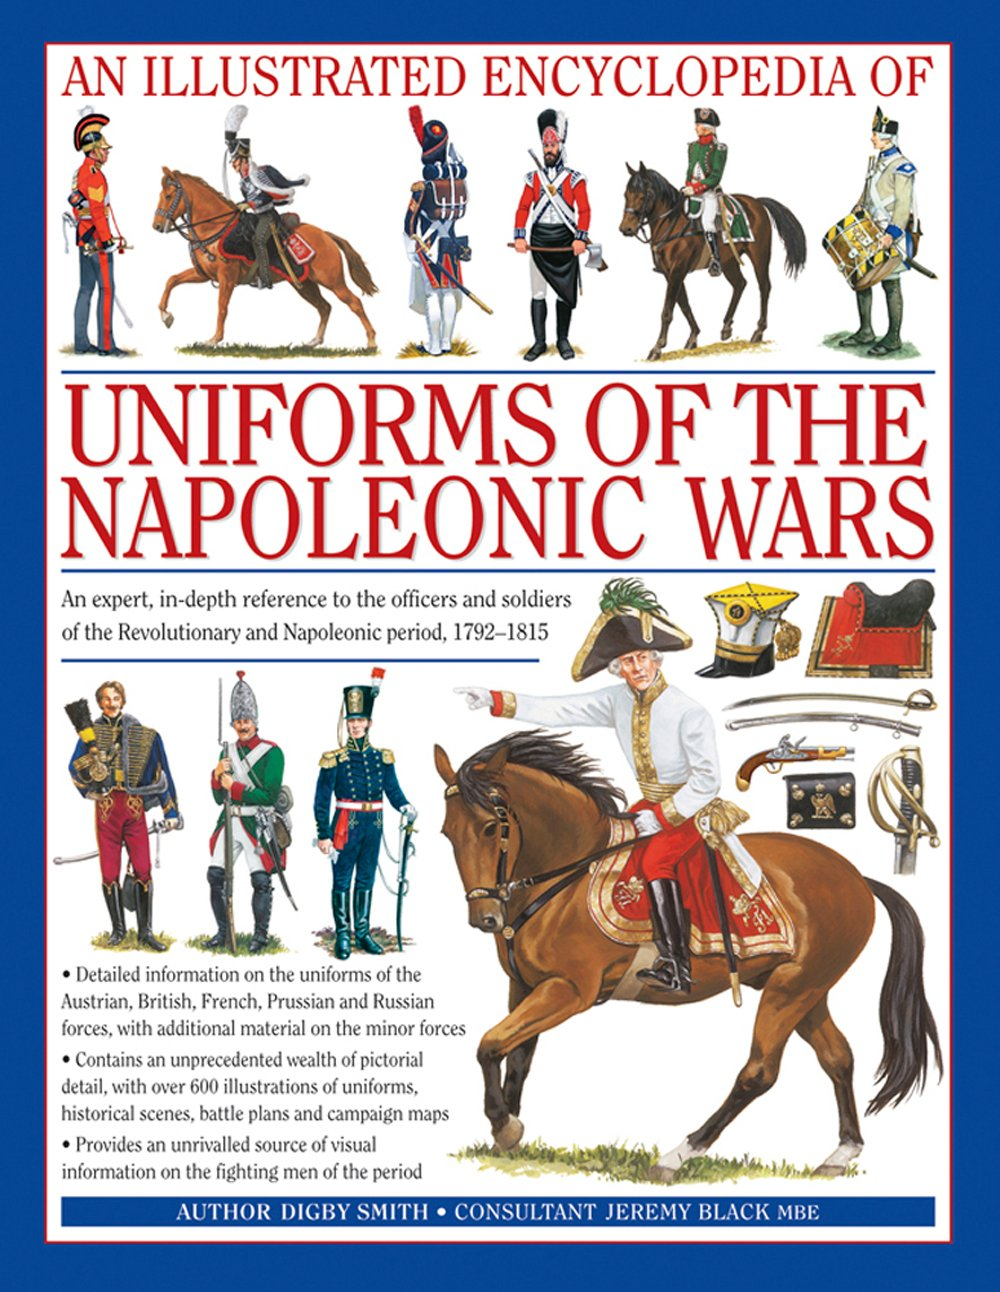 An Illustrated Encyclopedia: Uniforms of the Napoleonic Wars ... on timeline of napoleon's battles, map of grant's battles, map of world war 1 battles, map of civil war battles, map of alexander's battles, map of napoleon bonaparte battles, map of george washington's battles, map of mexican war battles, map of texas battles,